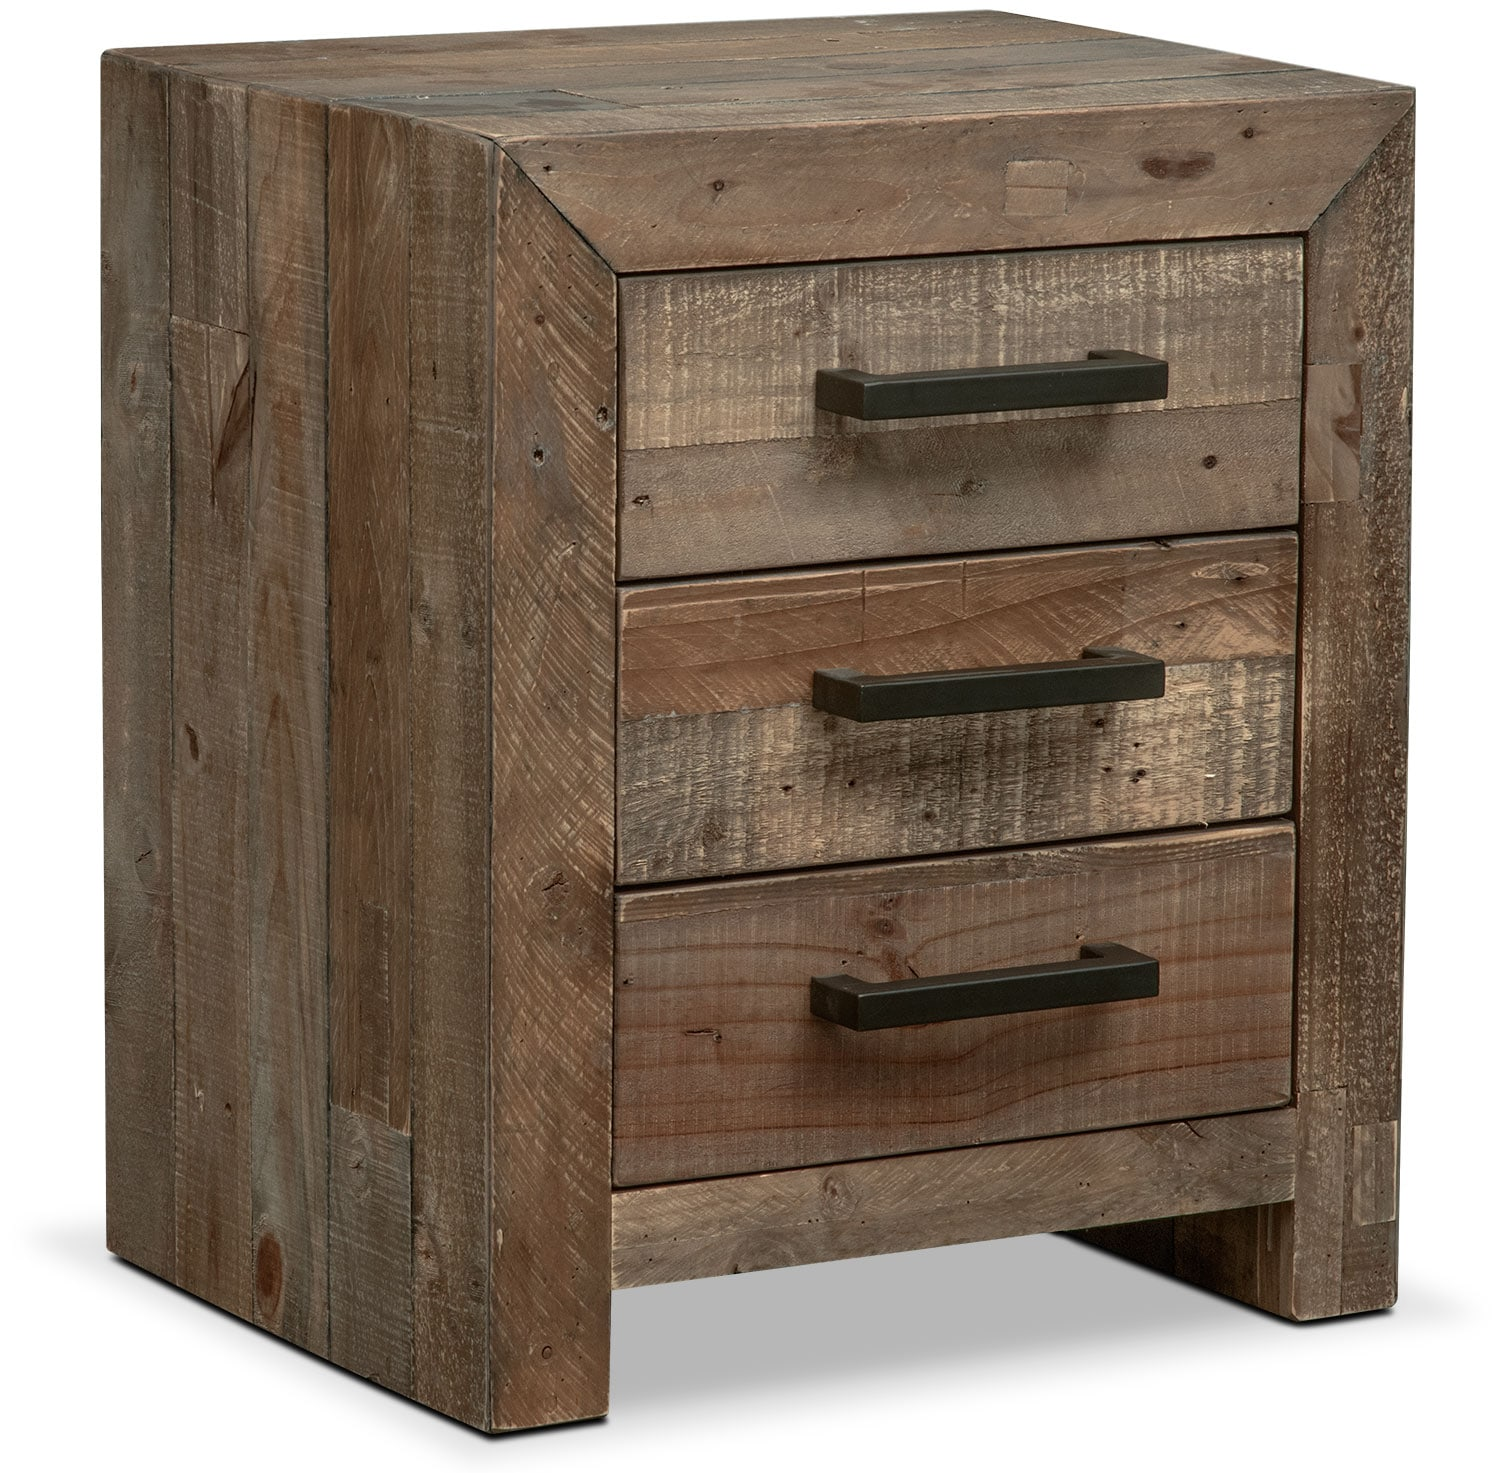 Bed And Chest Of Drawers Set Icon